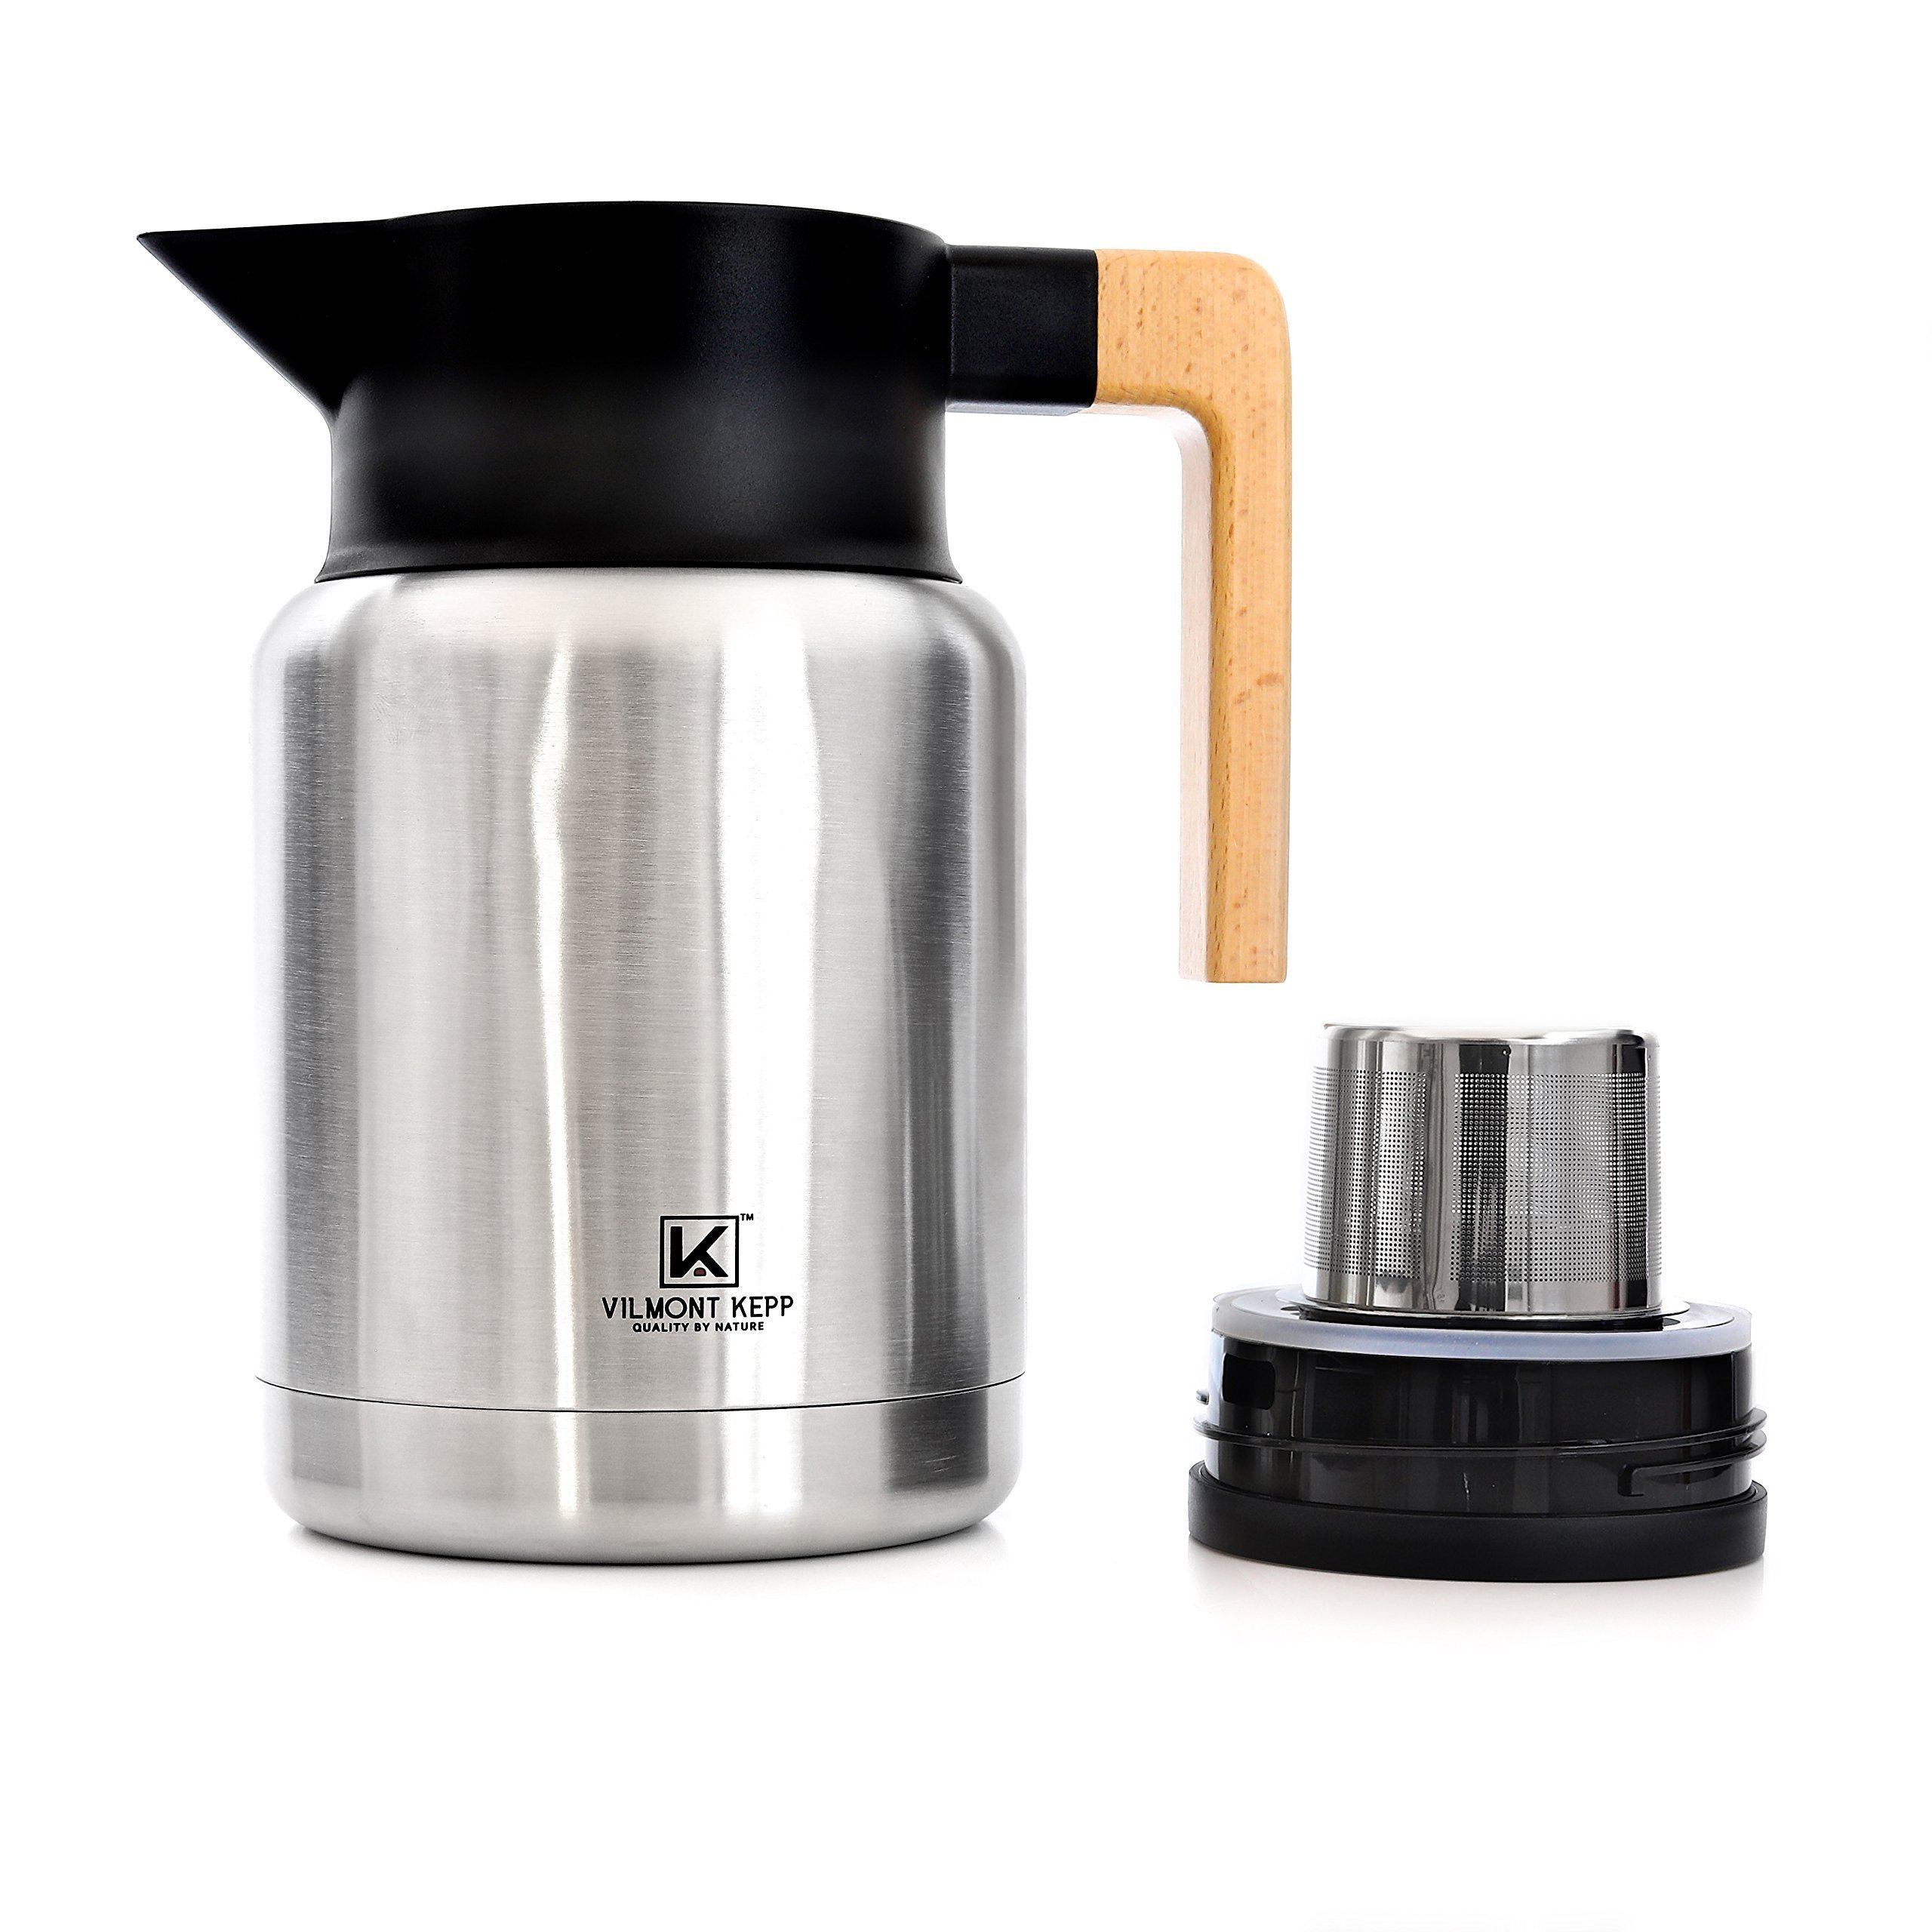 Vilmont Kepp Premium Large Thermal Carafe Coffee Tea Dispenser | Cold Beverages | 18/8 Stainless Steel Beechwood Handle (50oz) | Home Office | Gift | 8.5 inches High